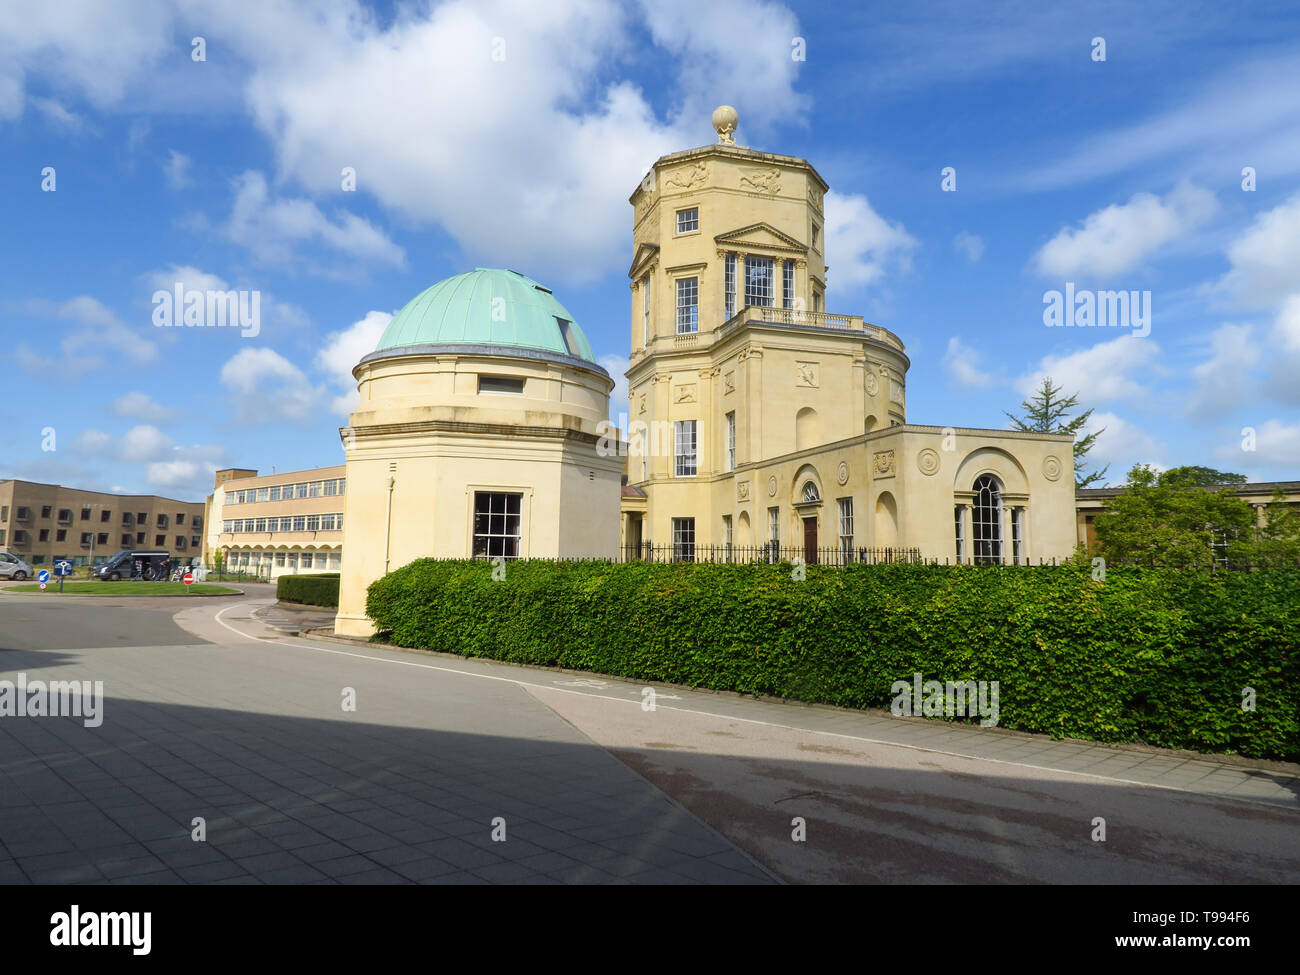 The 18th Century former  Radcliffe Observatory on the Green Templeton site, part of Oxford University, Woodstock Road, Oxford. Stock Photo